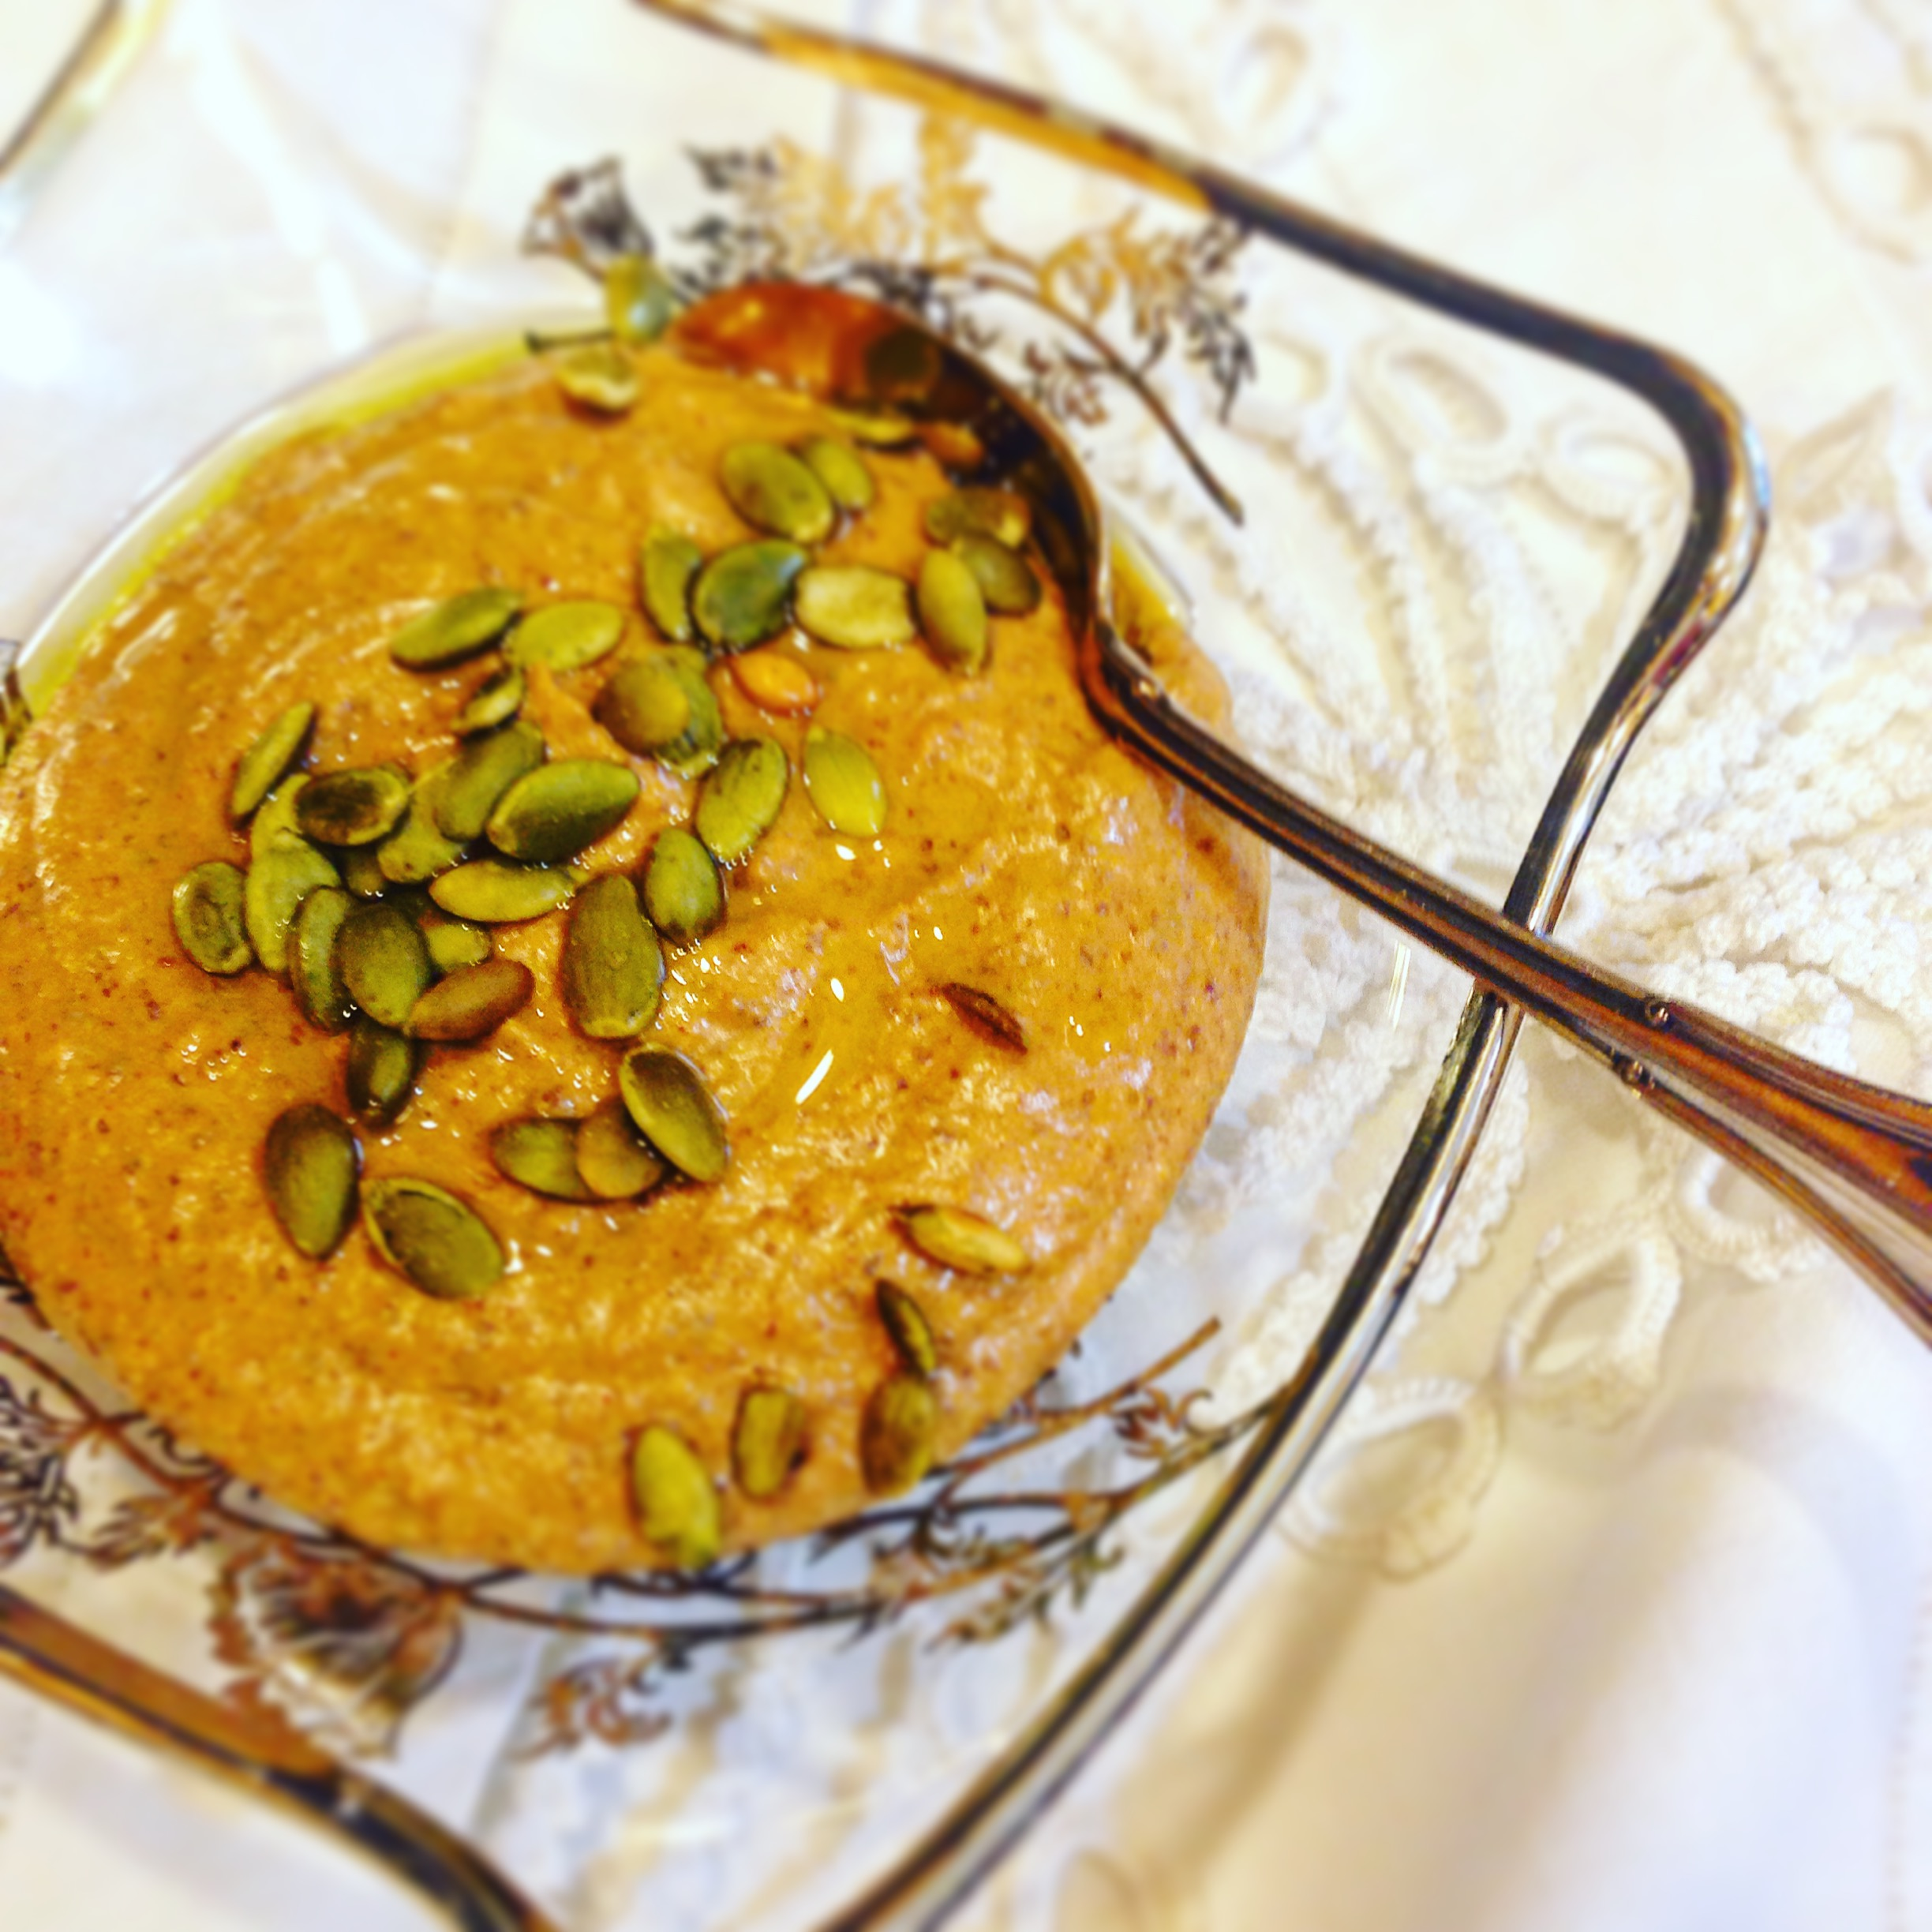 pumpkin seed and chili hummus